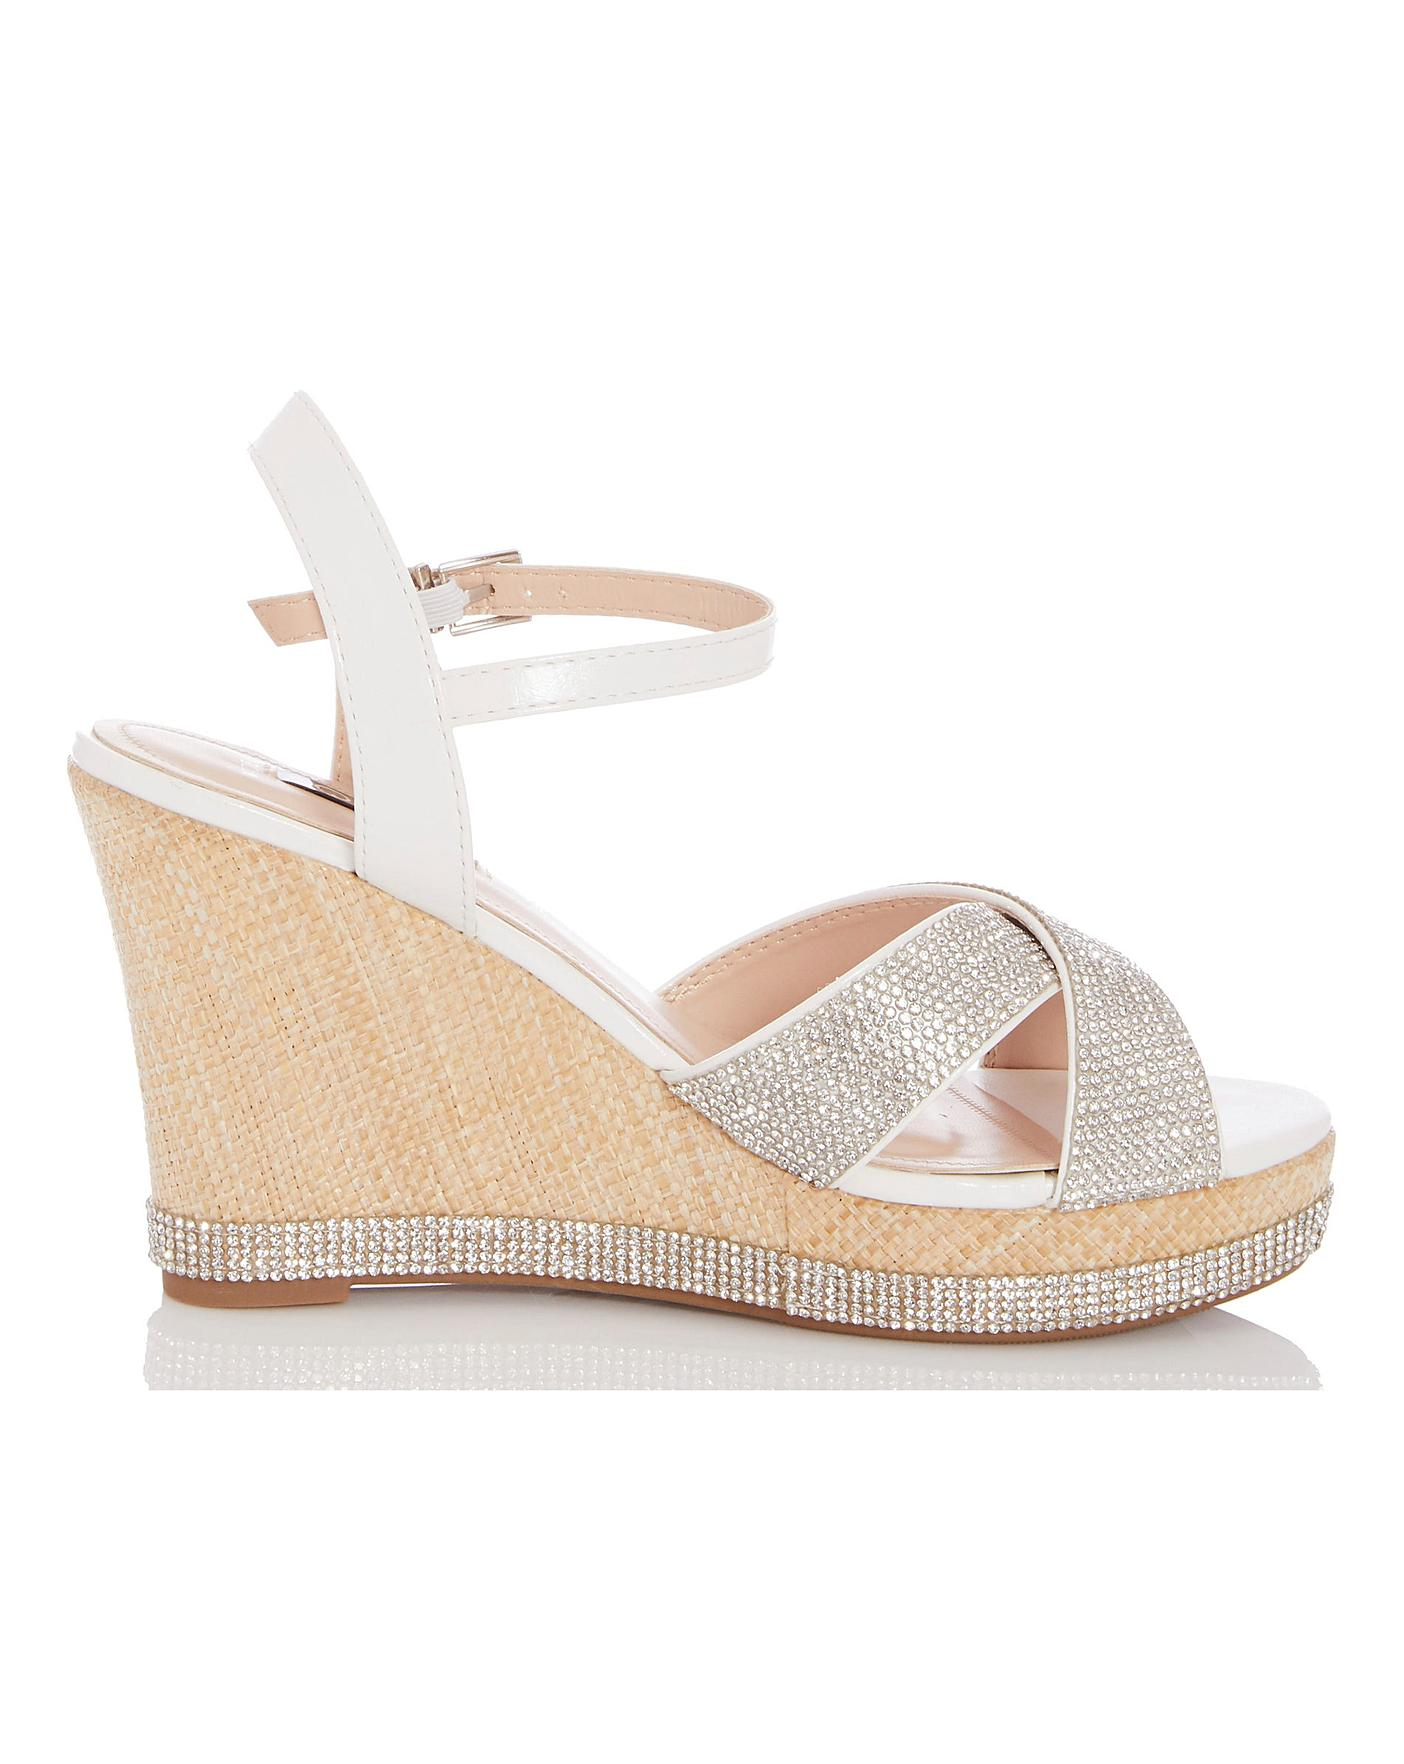 1e410ae7d58 Quiz Glitter Wedge Sandals